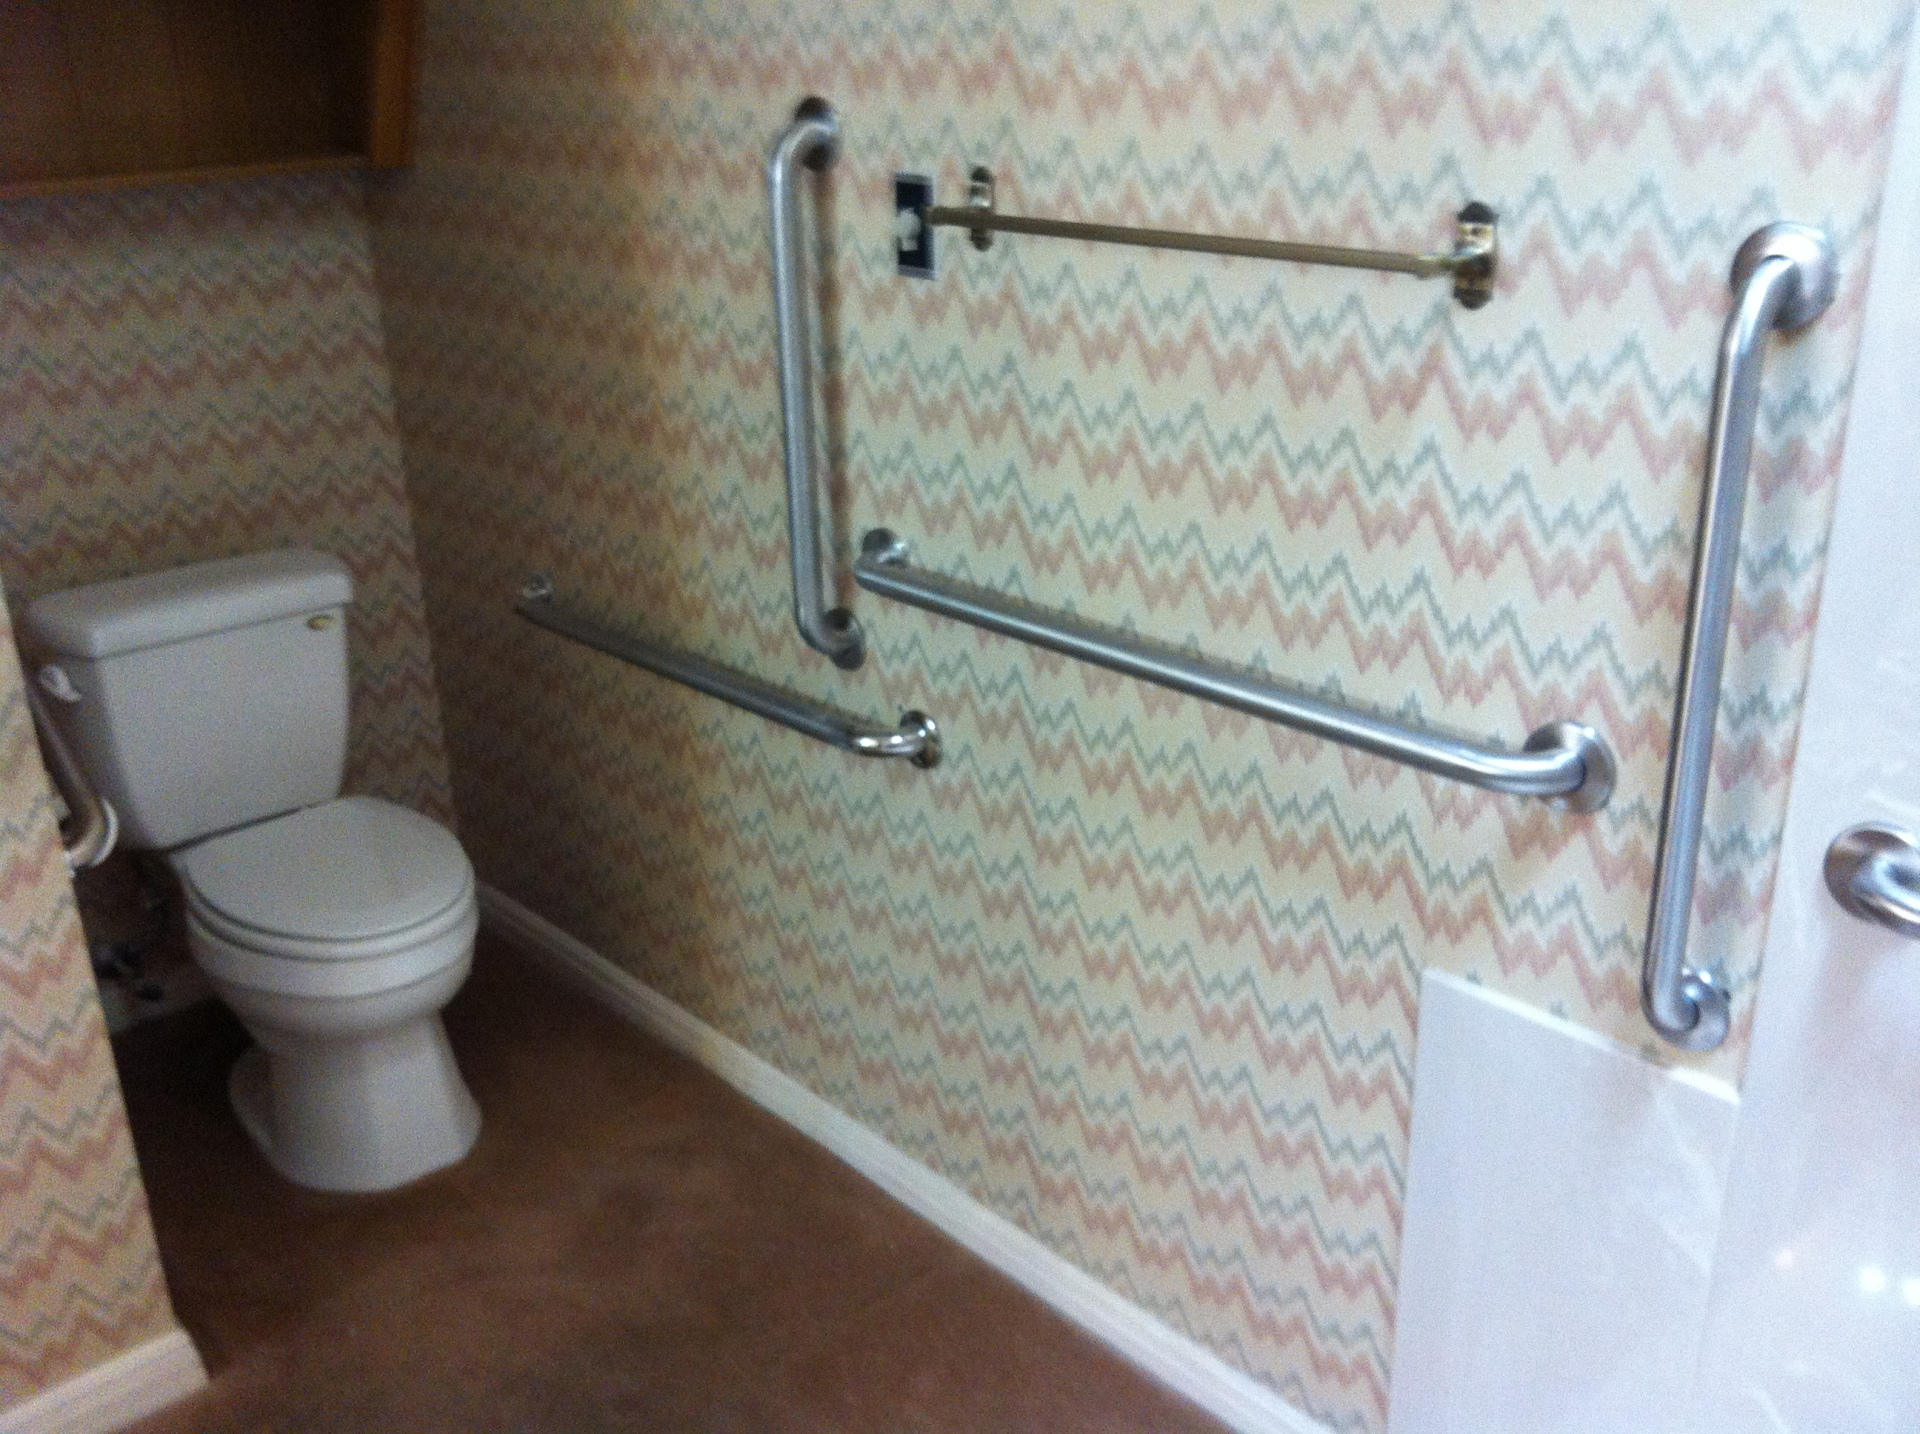 Handicap toilet with extra bars for wheelchair person